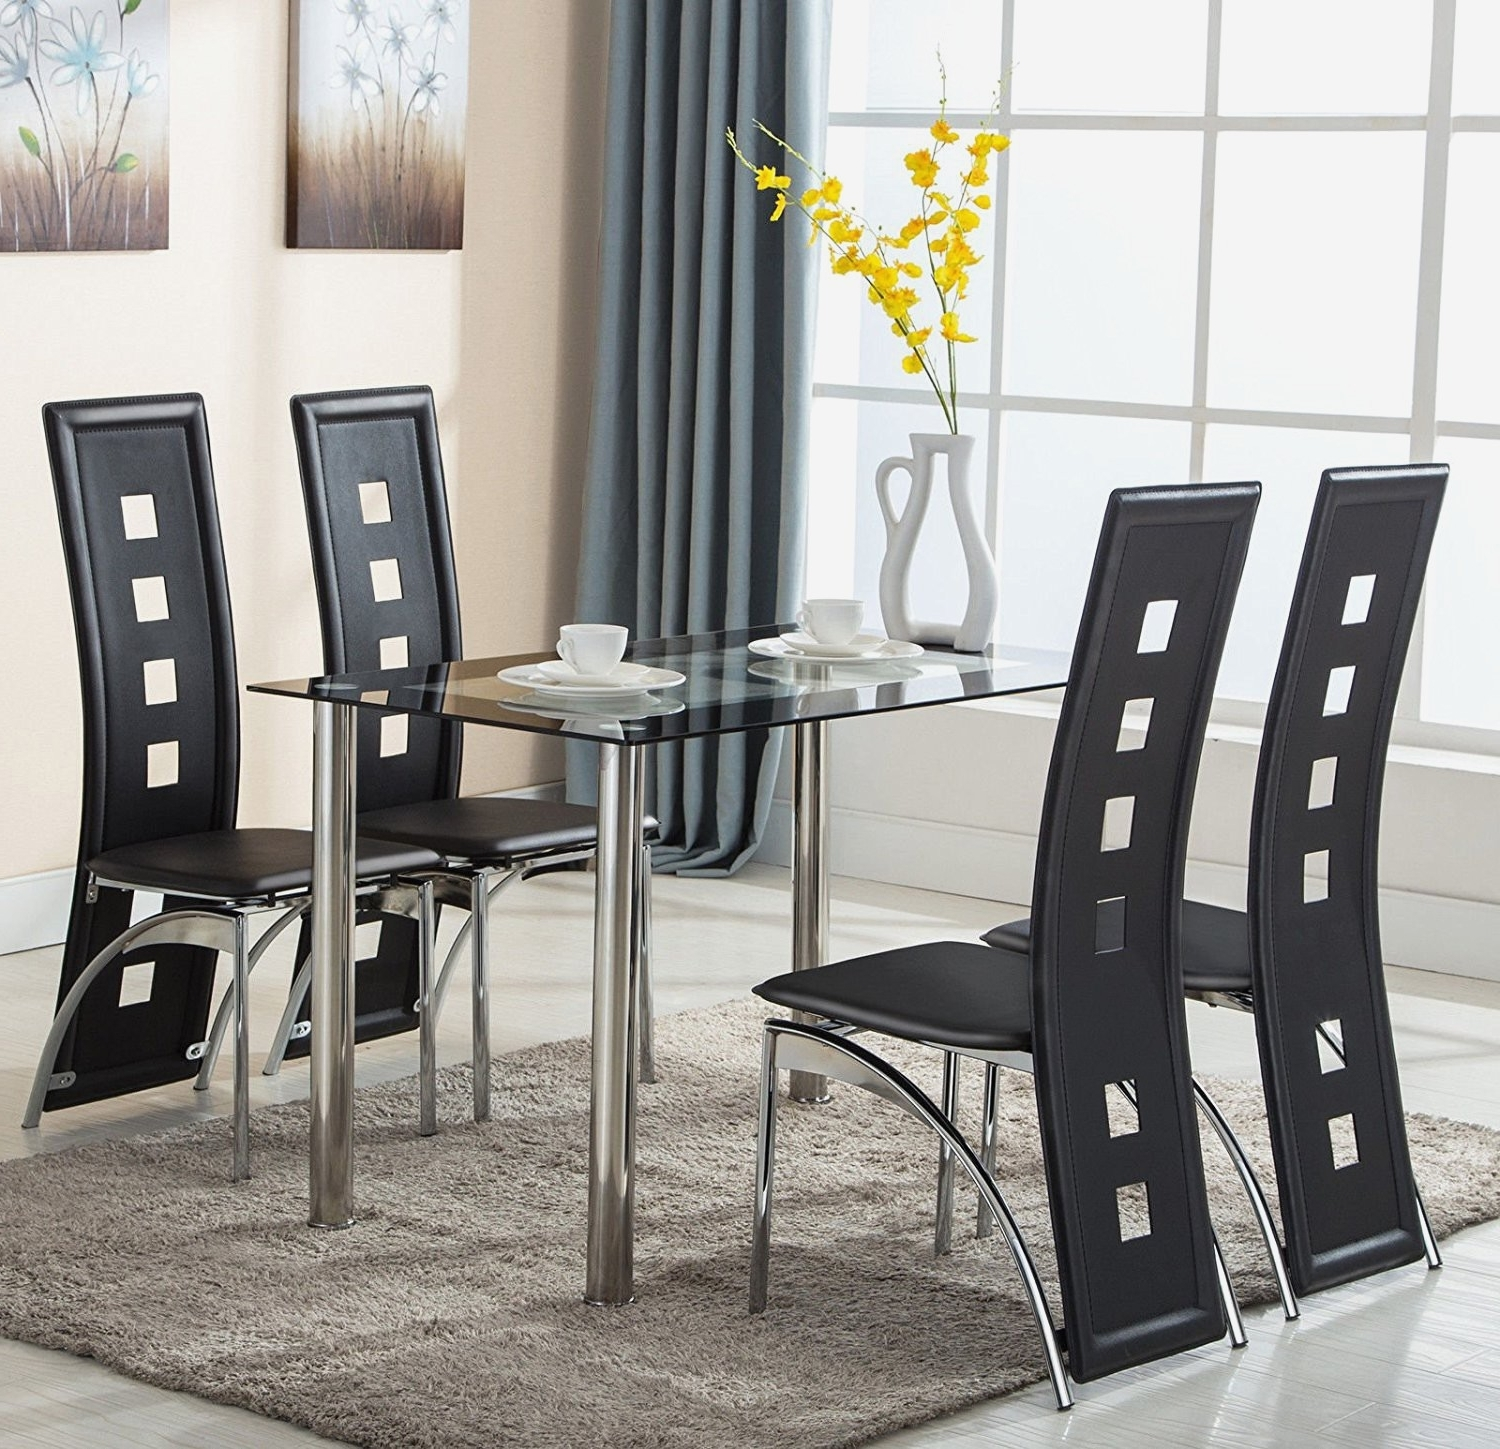 Widely Used Ebay Dining Suites Regarding Dining Room Suites Ebay – Www (View 25 of 25)